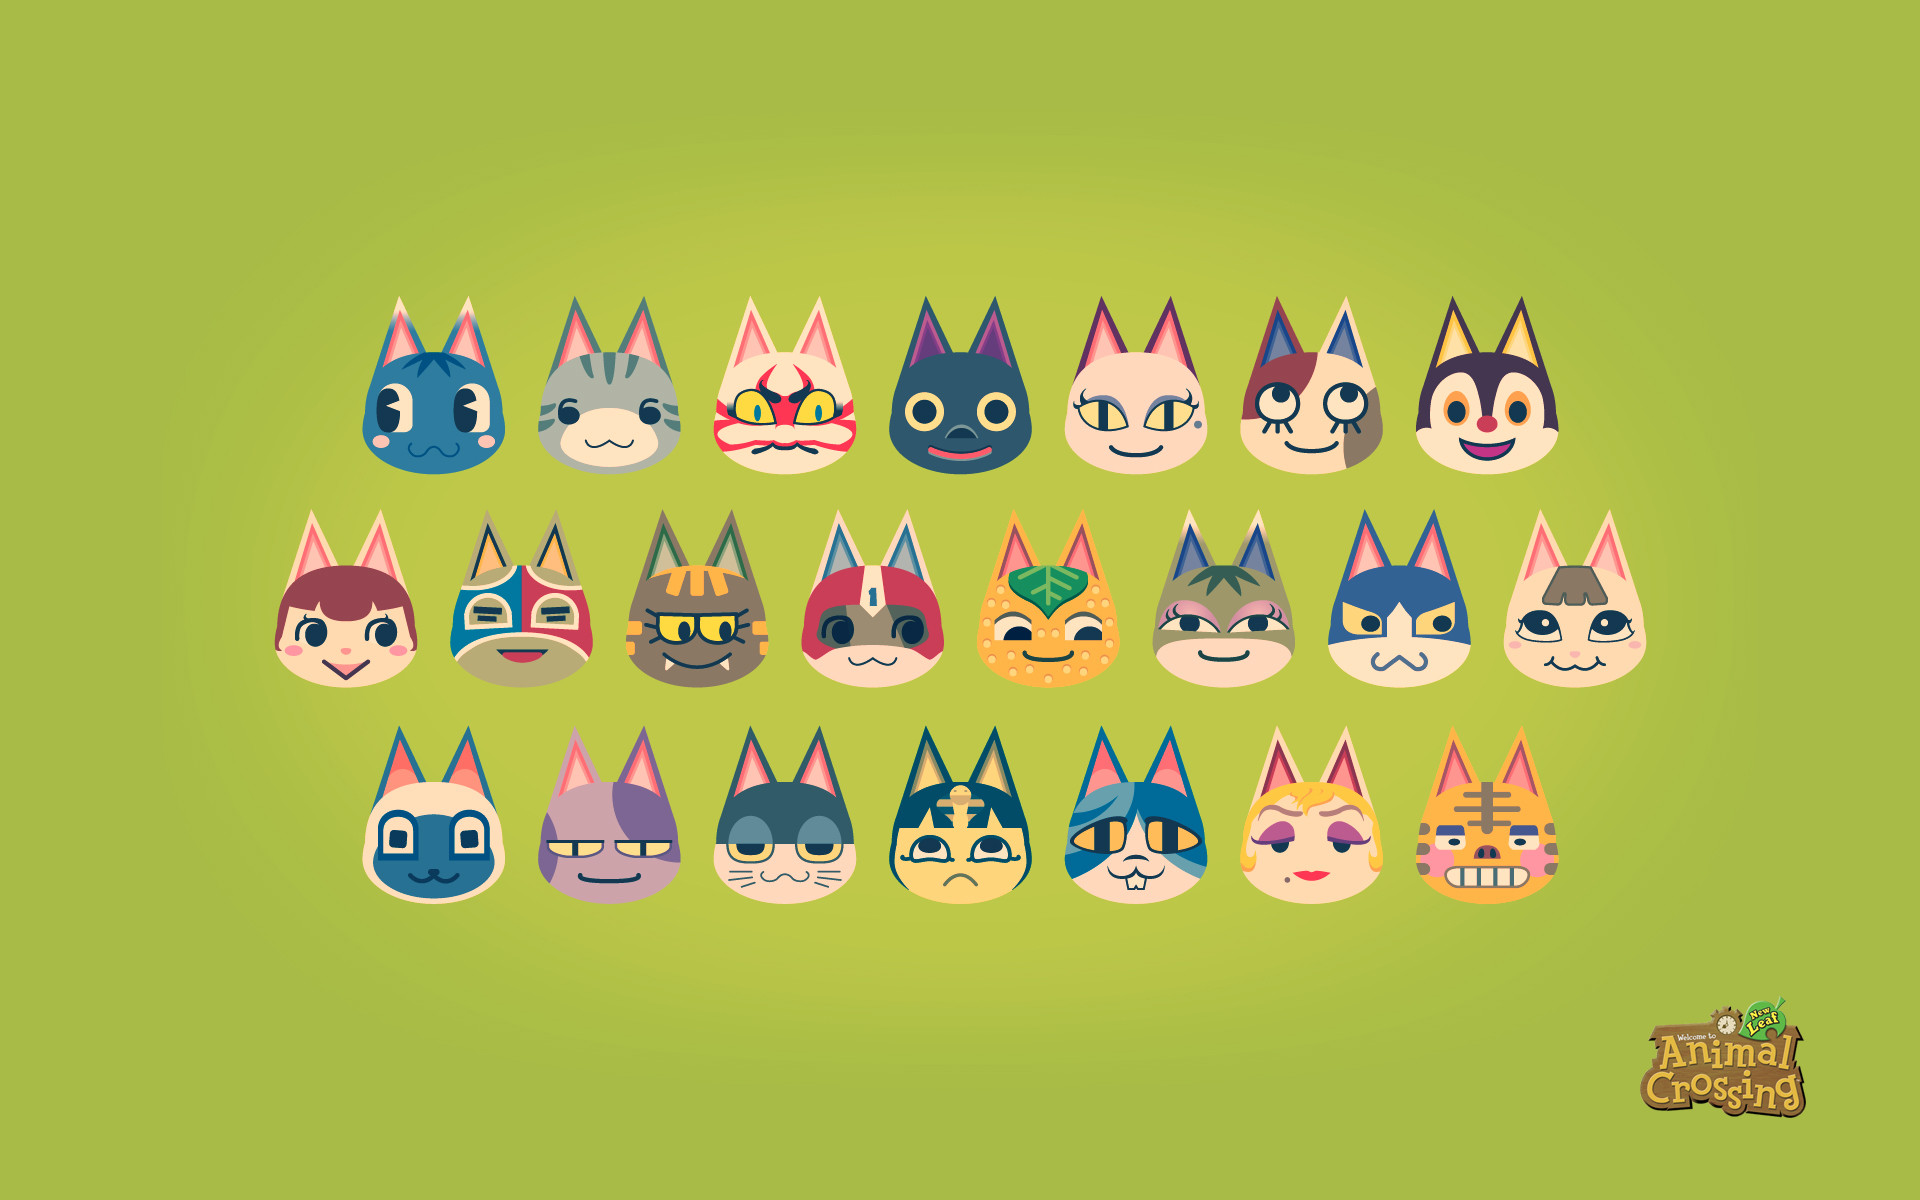 Acnl wallpaper qr codes 37 images - Animal crossing iphone wallpaper ...